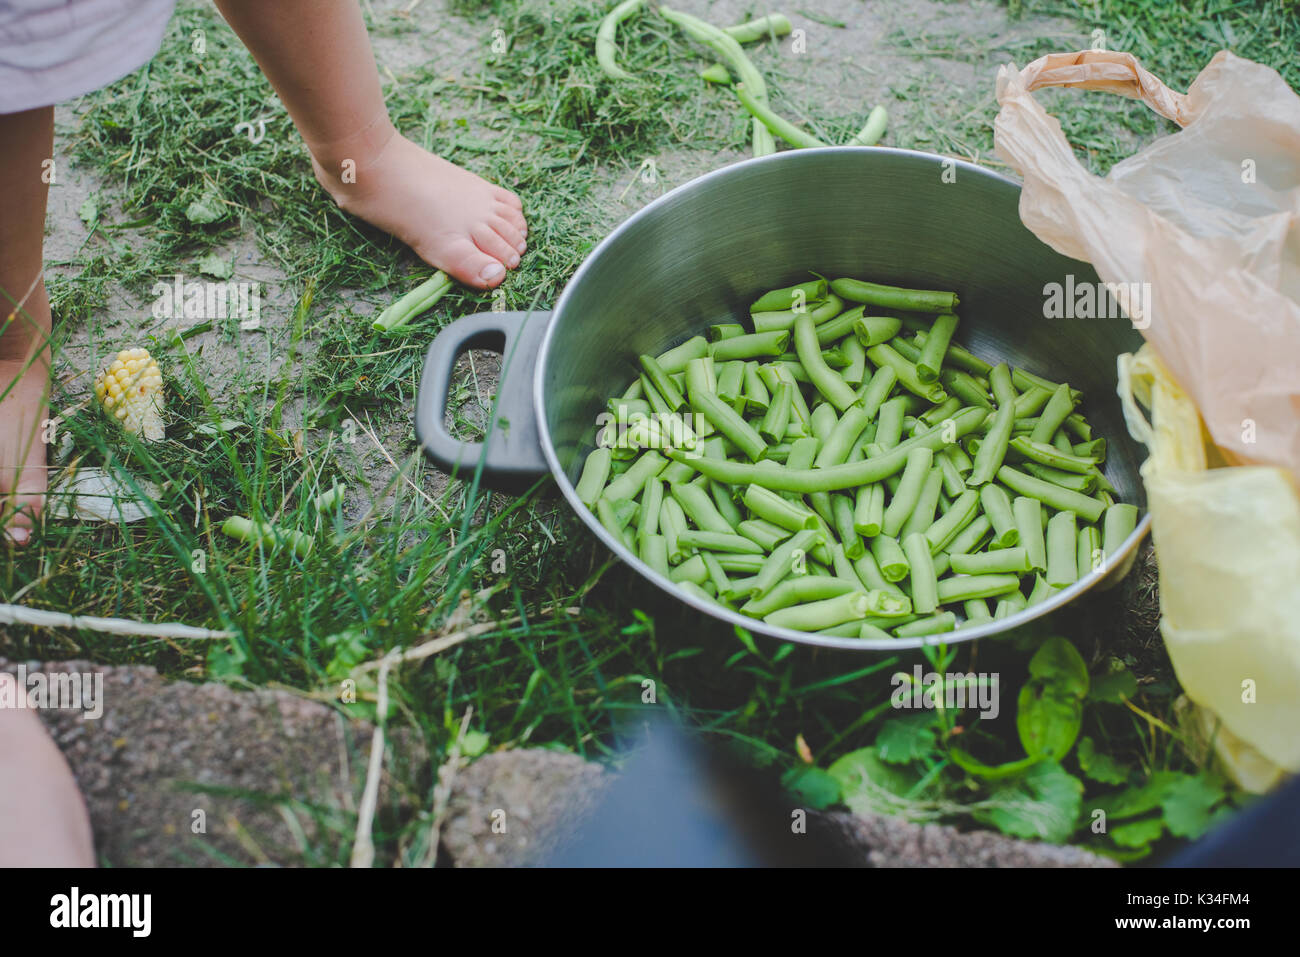 Fresh snapped green beans in a silver pot. - Stock Image